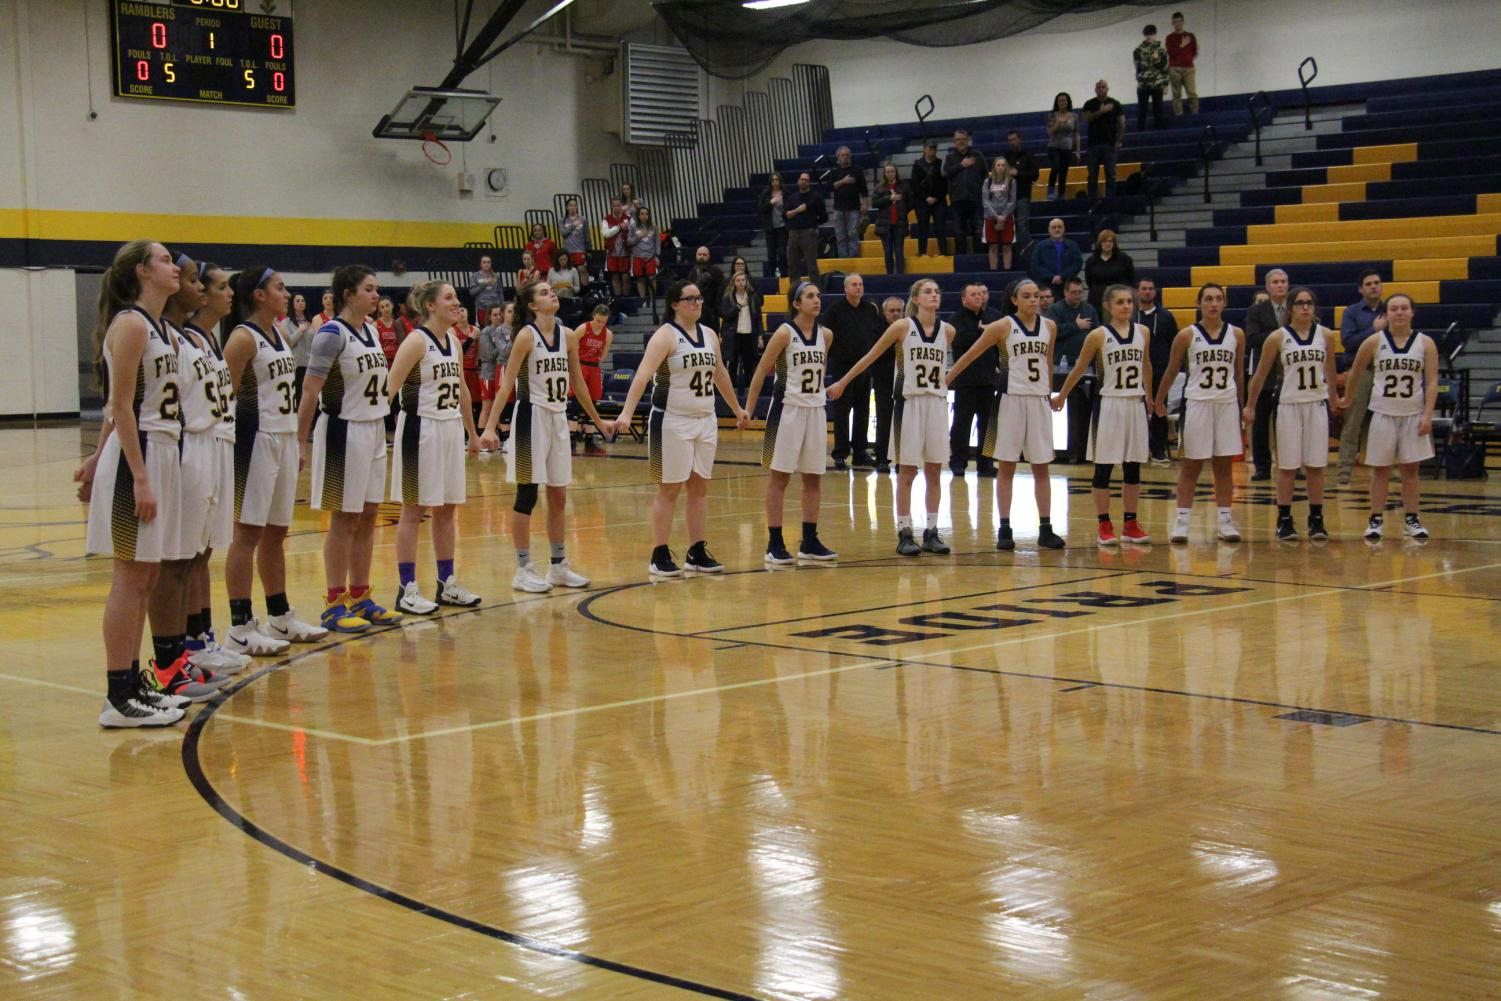 The Lady Ramblers stand together as the National Anthem plays over the gym.